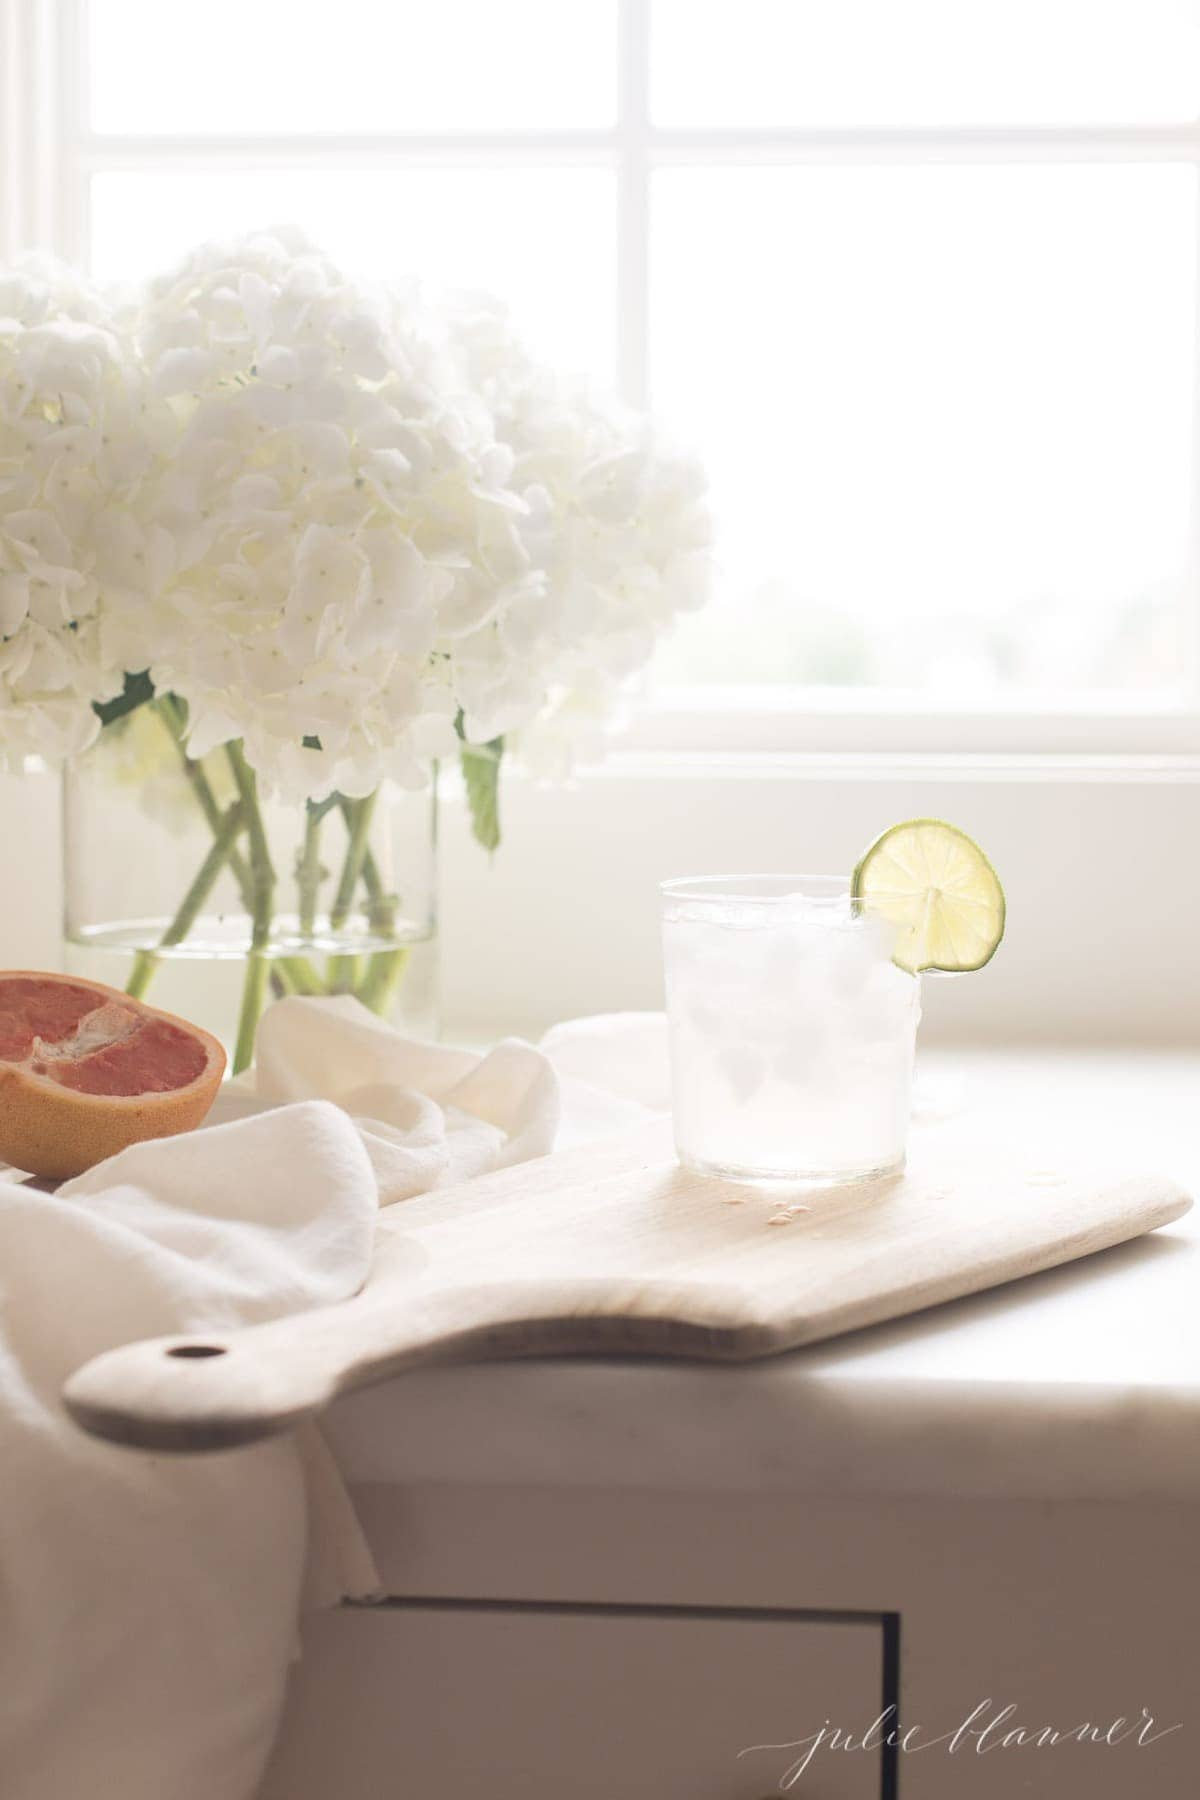 A cutting board with a fresh paloma drink on top, floral arrangement in background.